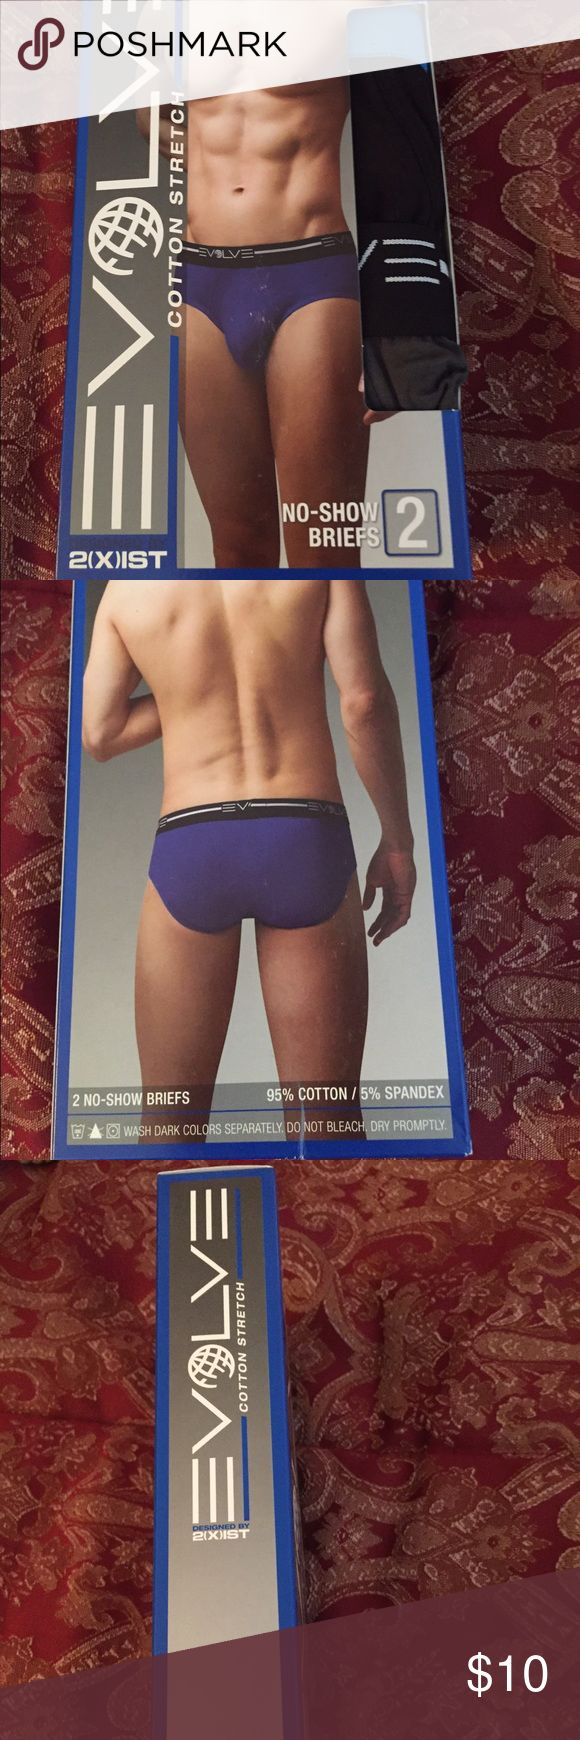 Men's Evolve No Show Briefs Underwear 2 pk Men's Evolve by 2xist No Show Briefs Underwear 2 pk....95% Cotton and 5% spandex.....size large....colors are shown in the pictures...brand new....made in Bangladesh. 2xist Underwear & Socks Briefs